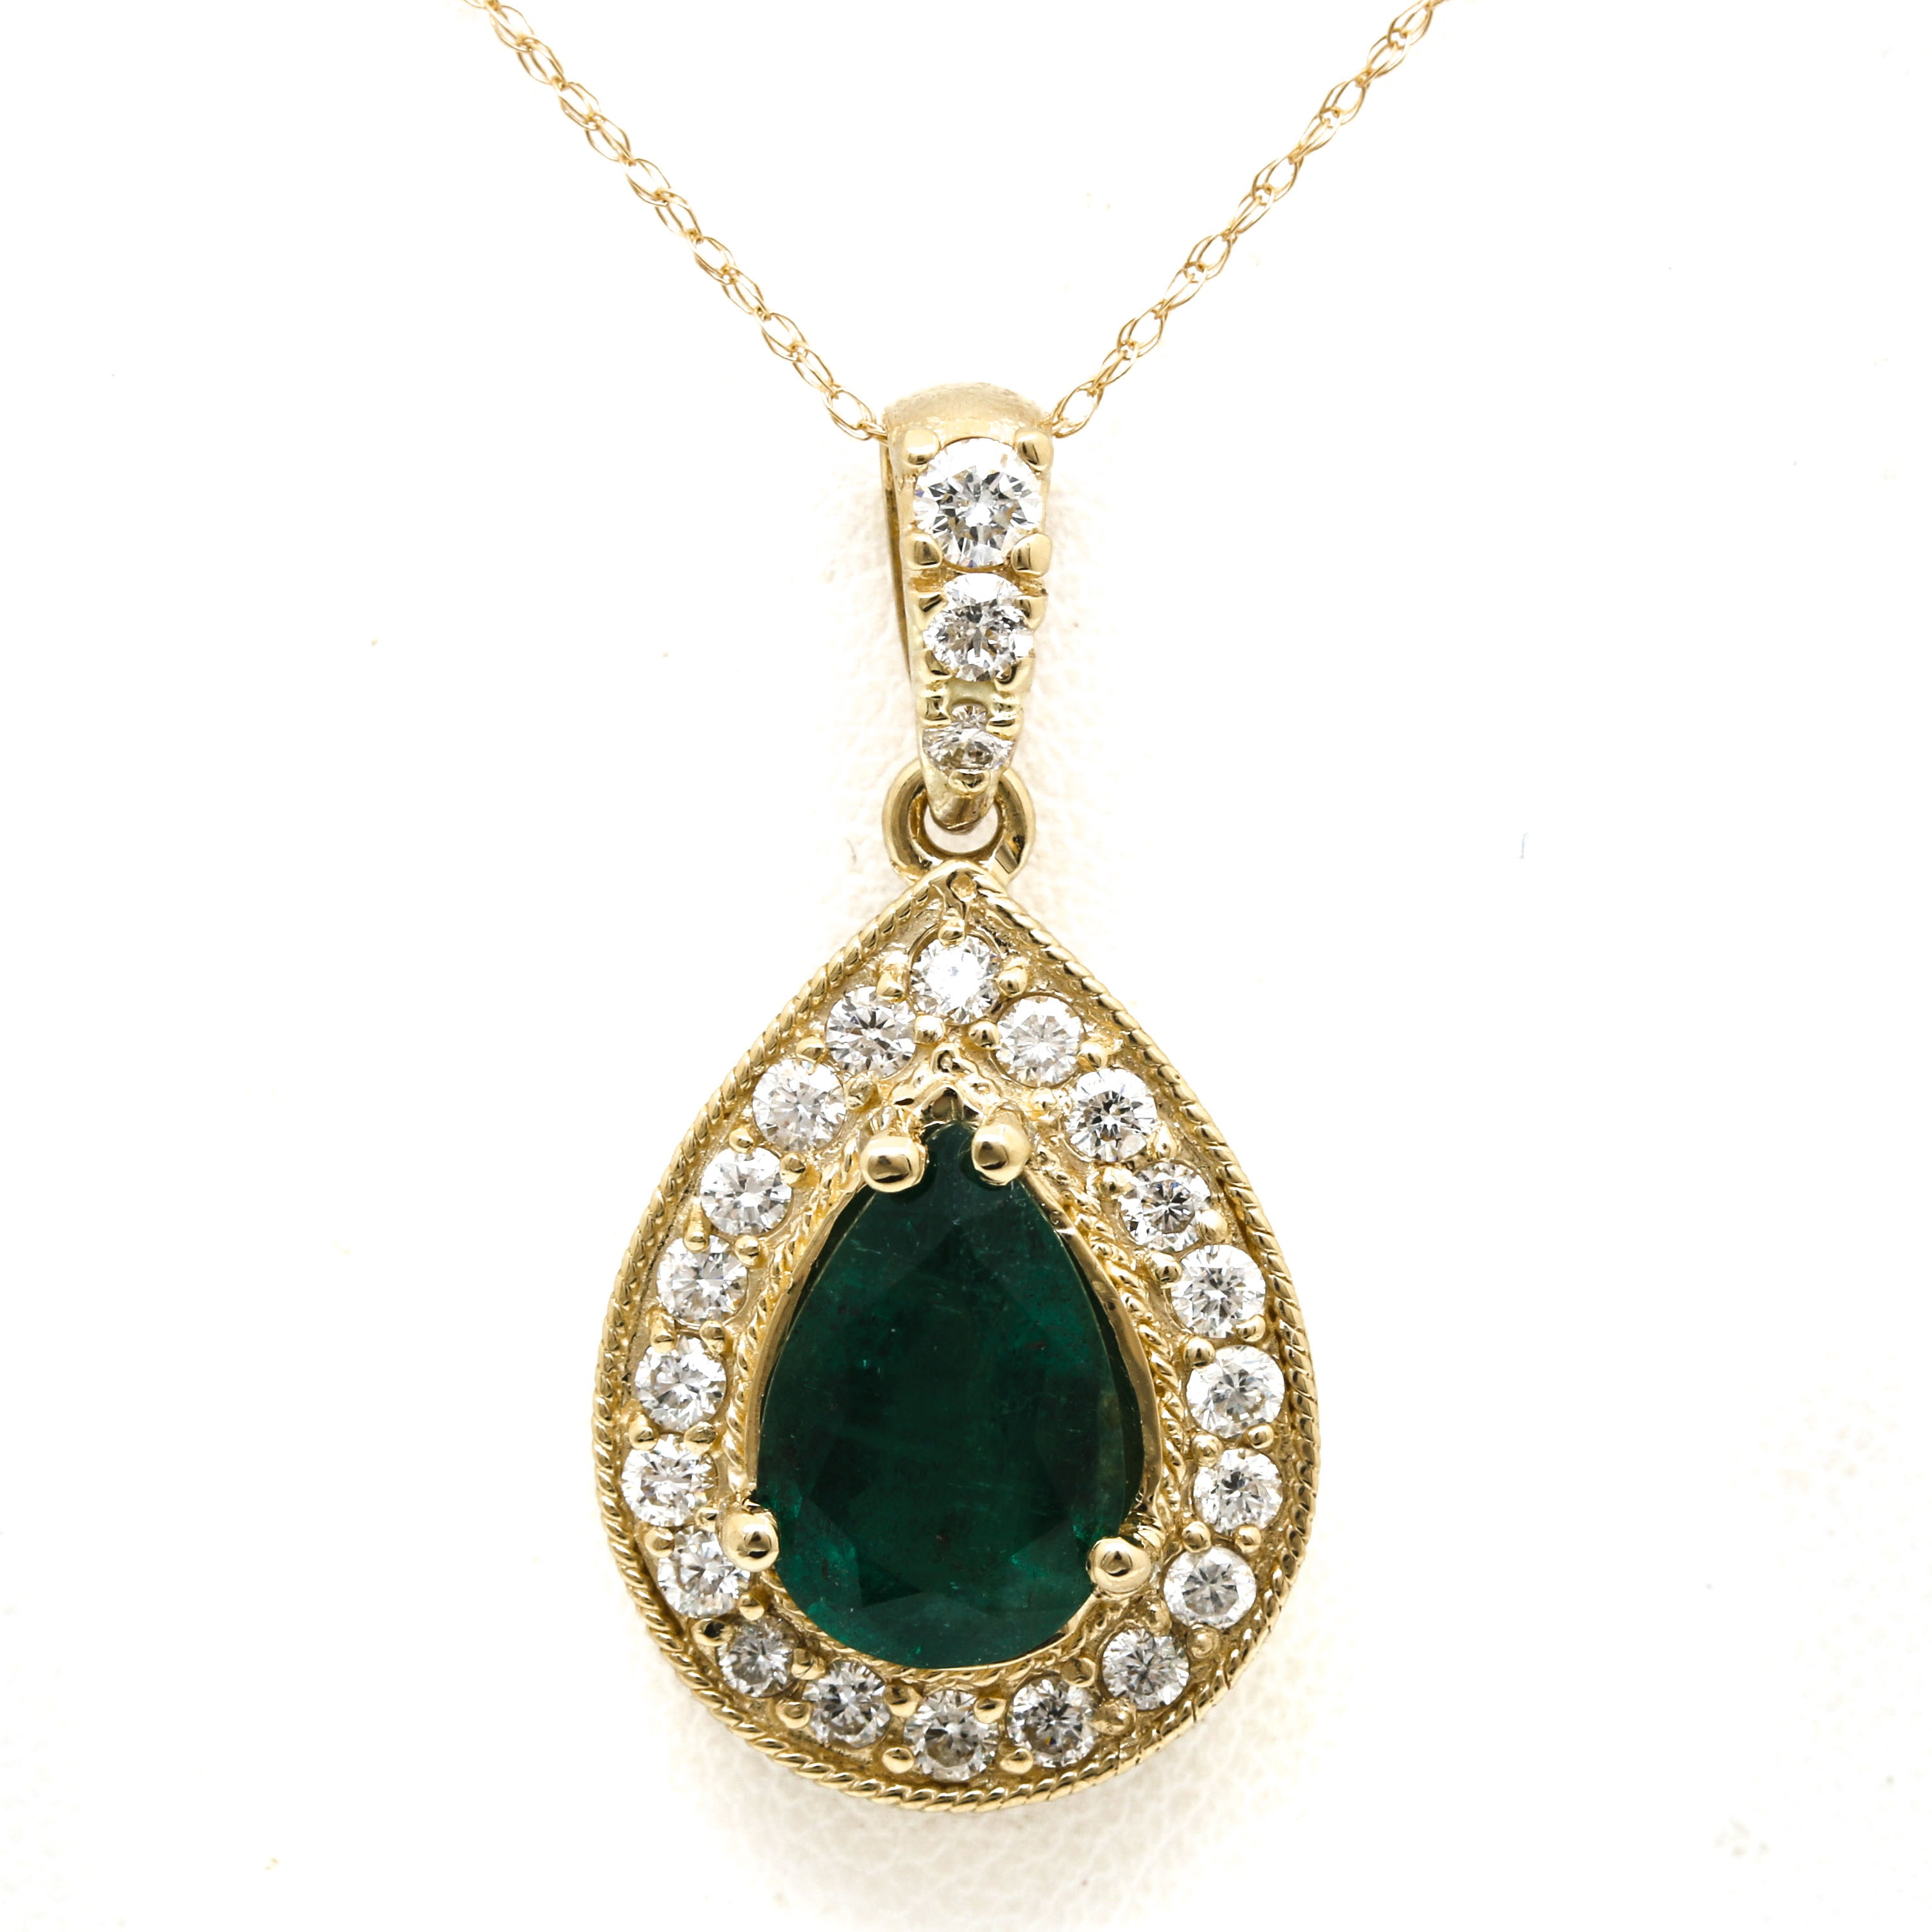 14K Yellow Gold 1.90 CT Emerald and Diamond Necklace